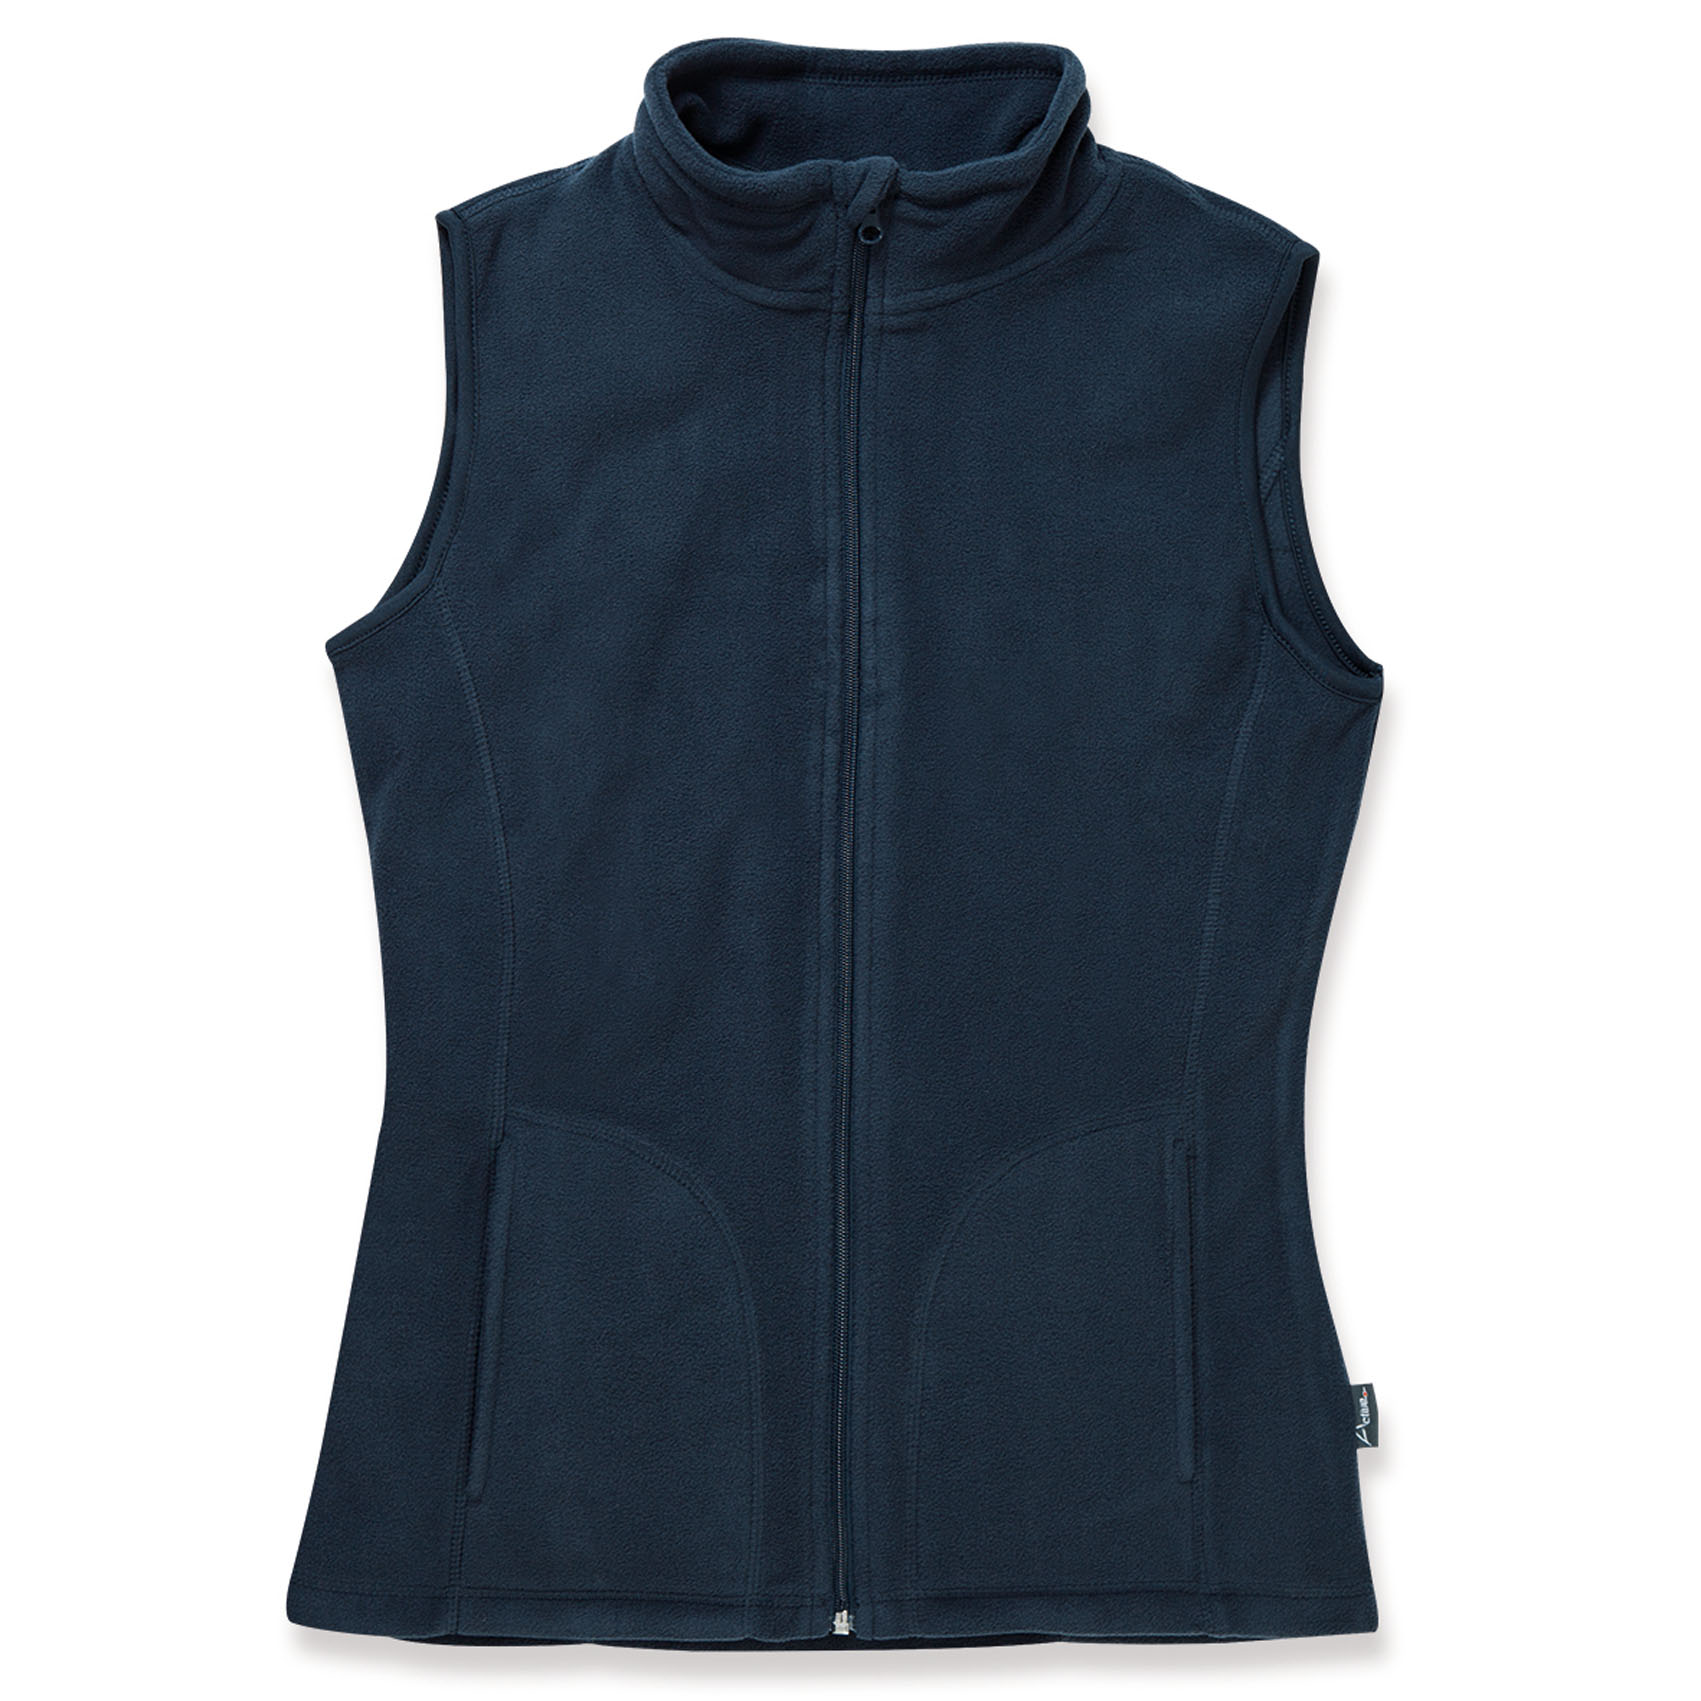 Stedman Polar Fleece Vest Active for her